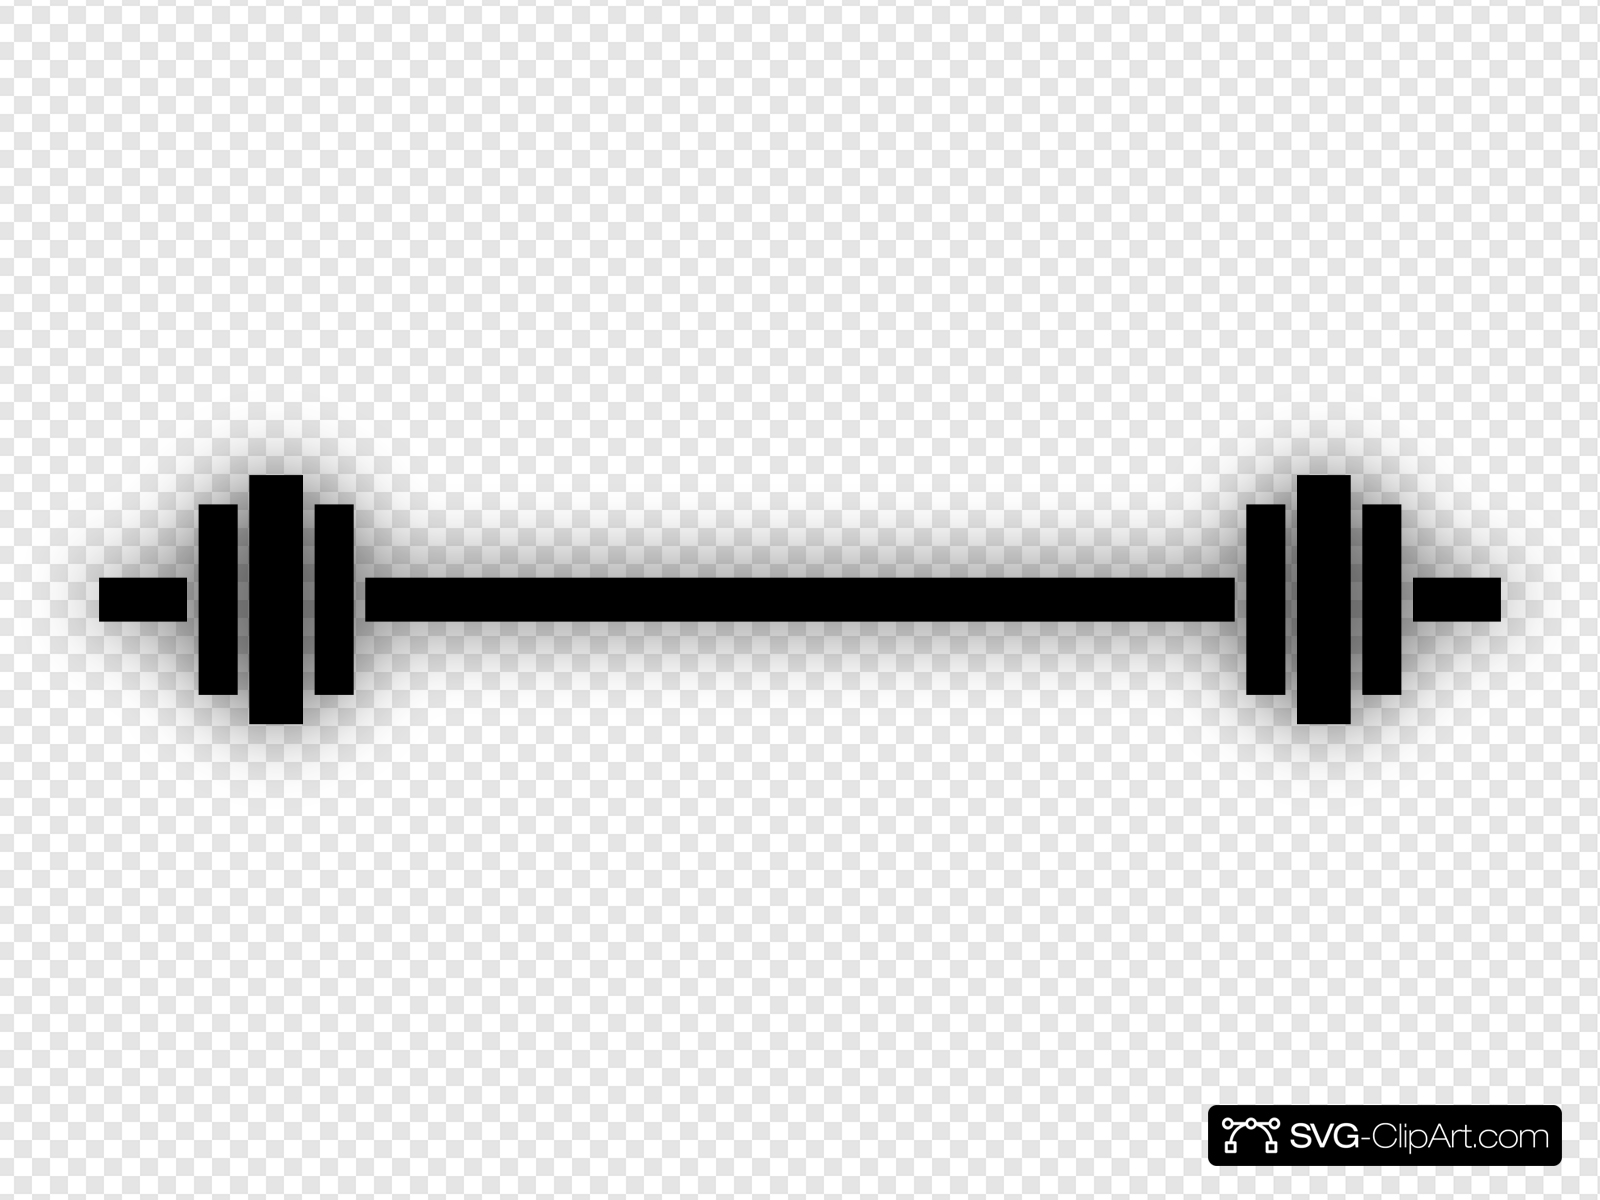 clip freeuse stock Clip art icon and. Barbell clipart svg.